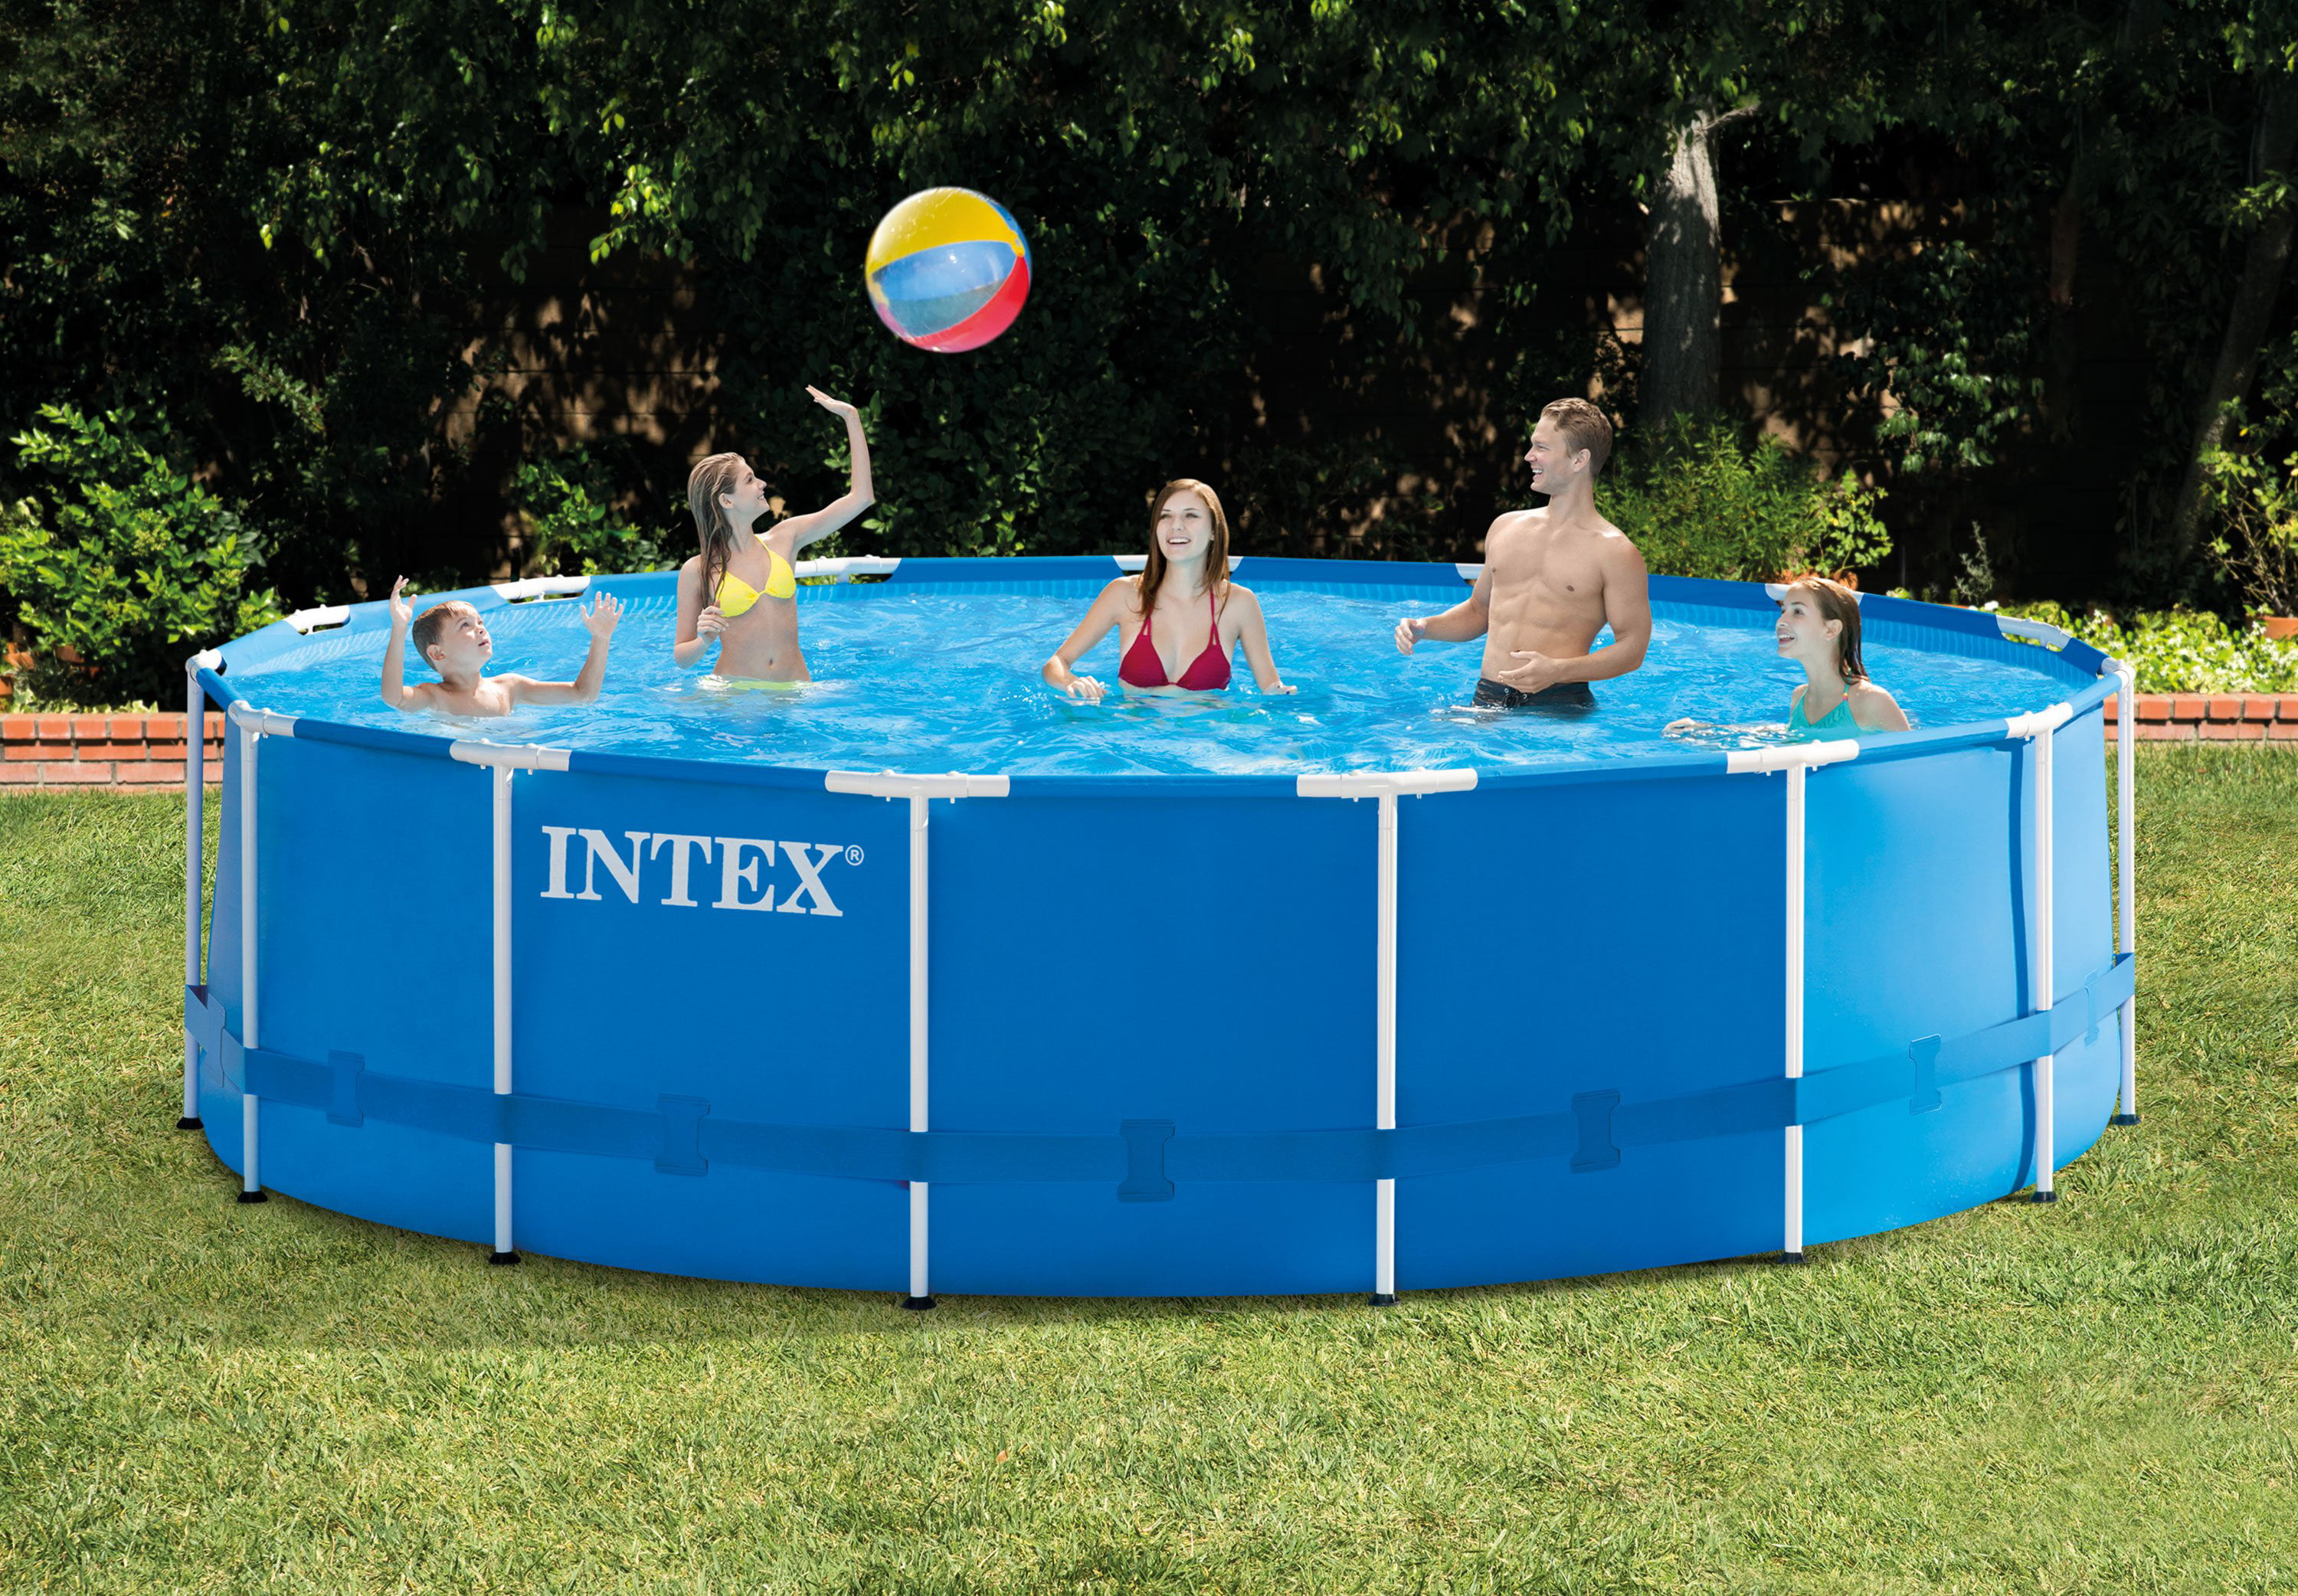 "Intex 15' x 48"" Metal Frame Above Ground Swimming Pool with Filter Pump by Above Ground Pools"